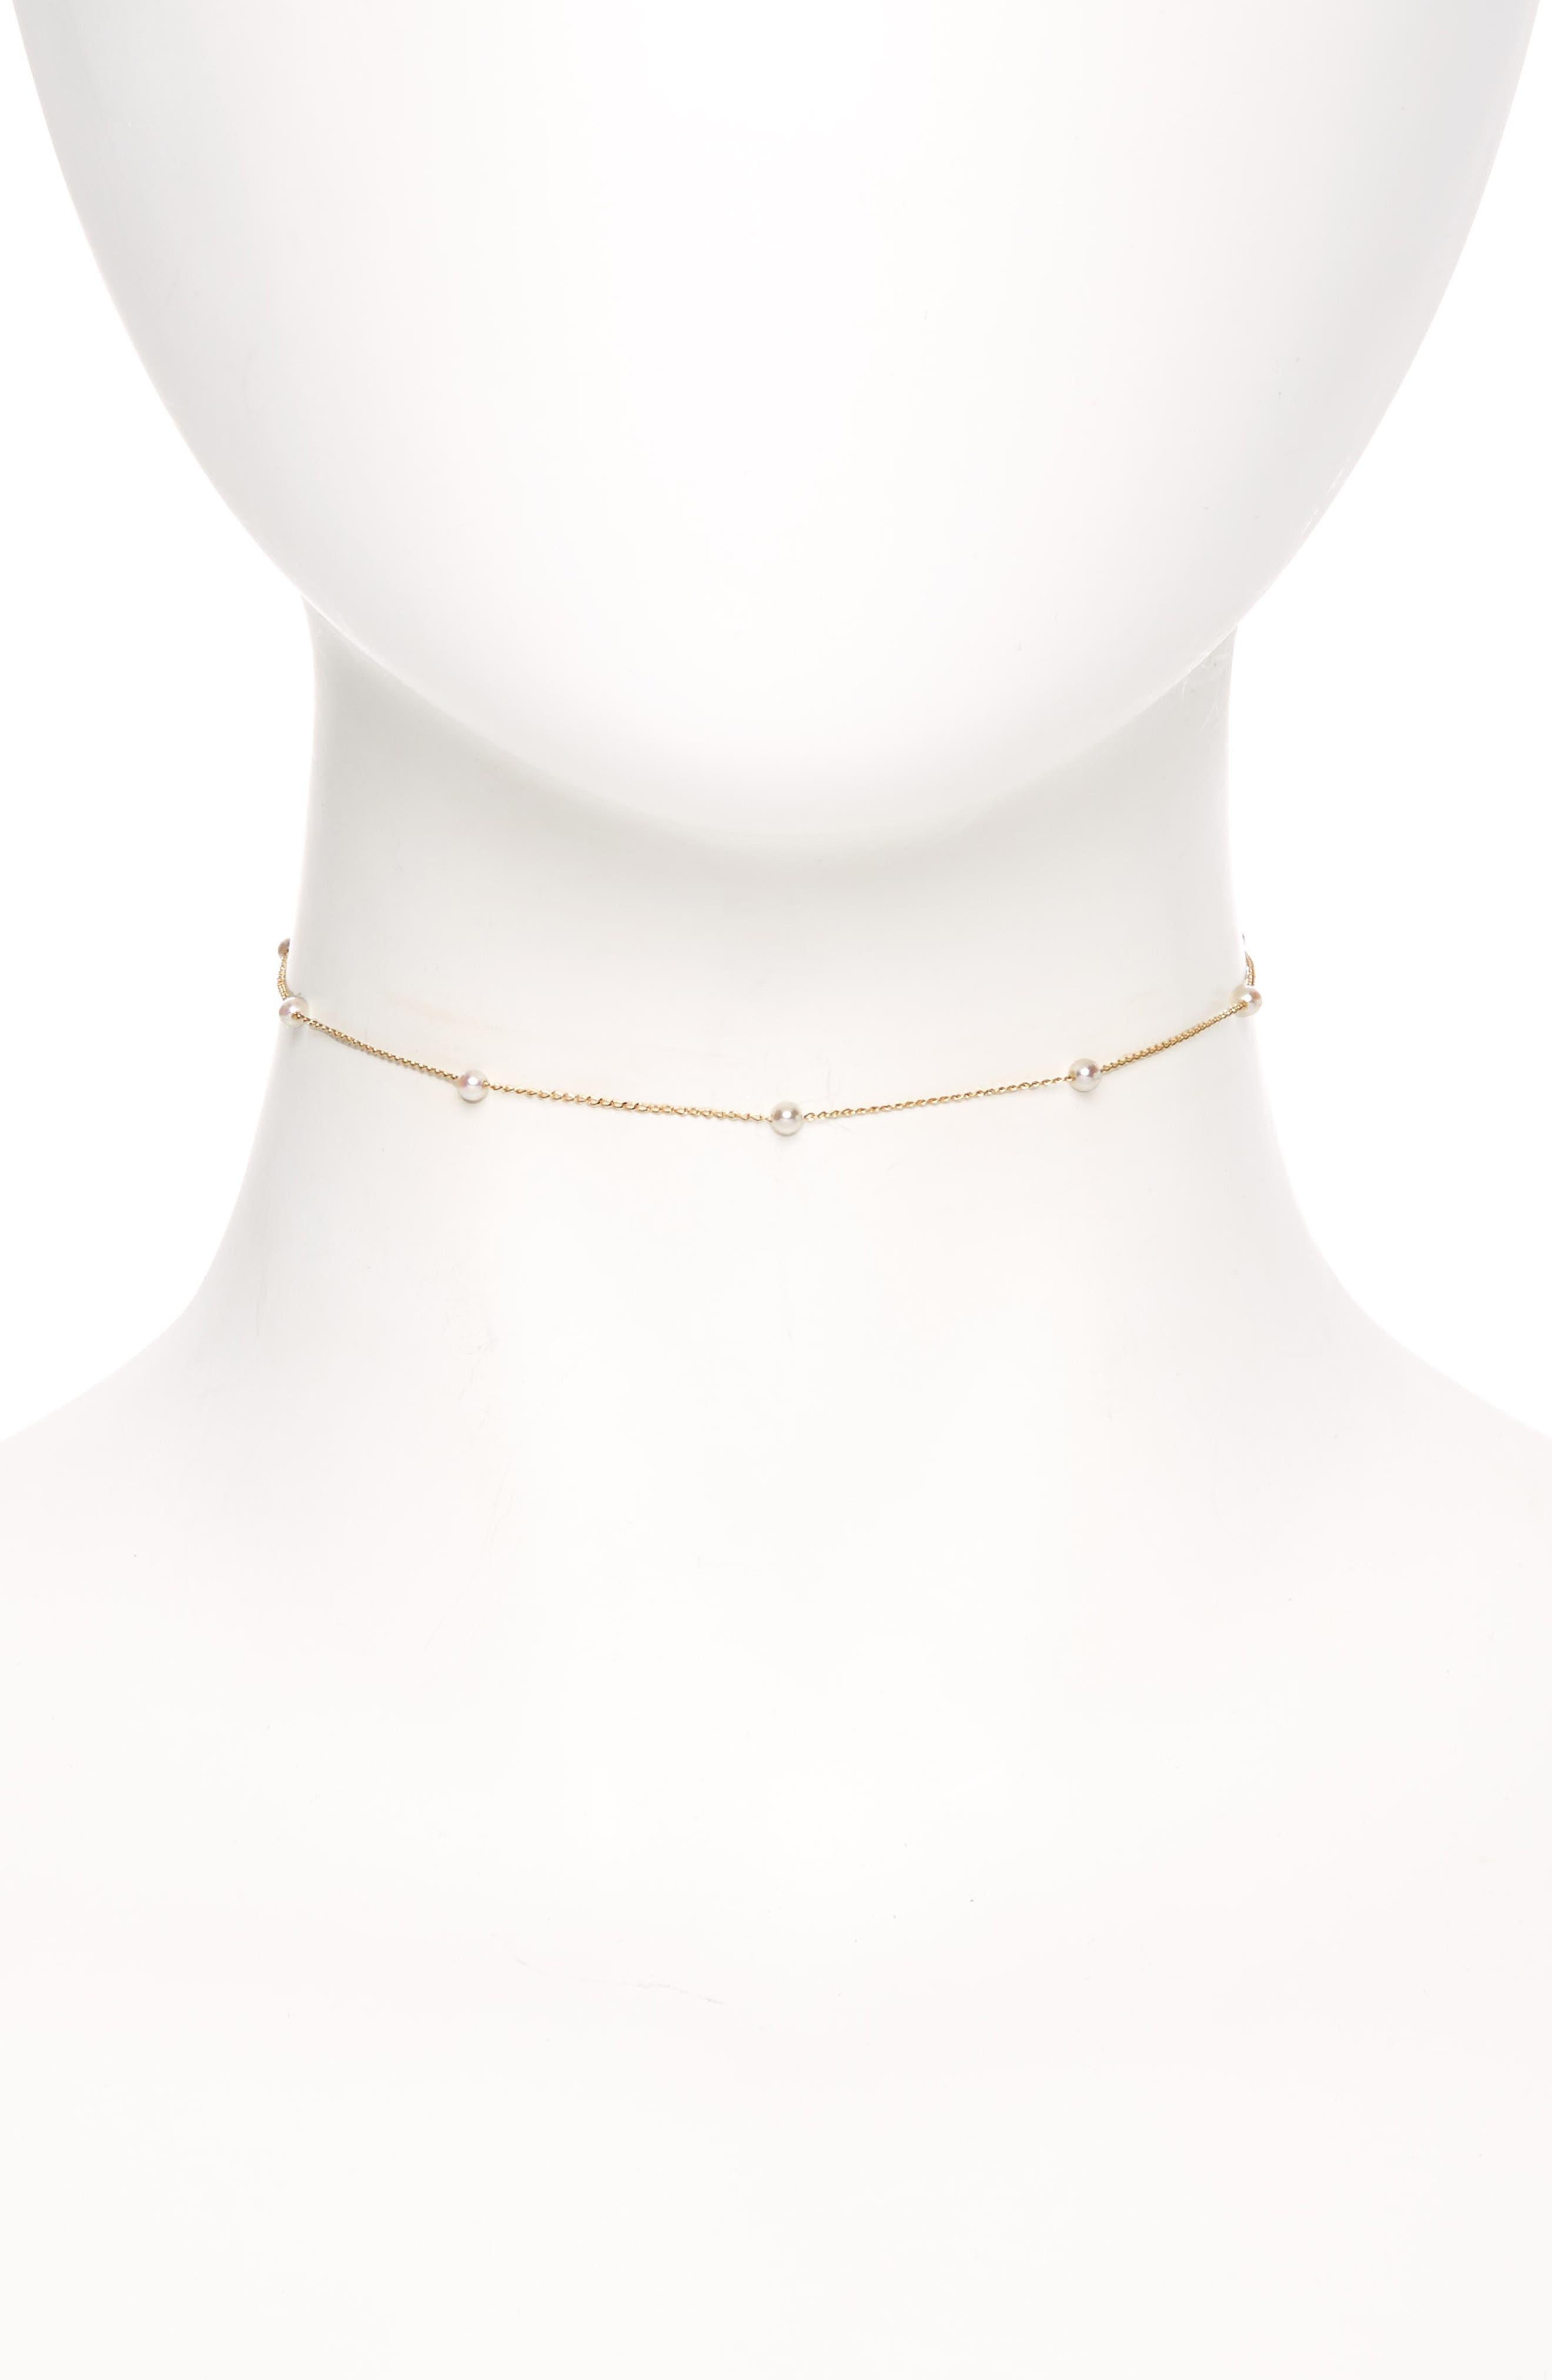 Sea of Beauty Pearl Chain Choker,                         Main,                         color, YELLOW GOLD/ WHITE PEARL